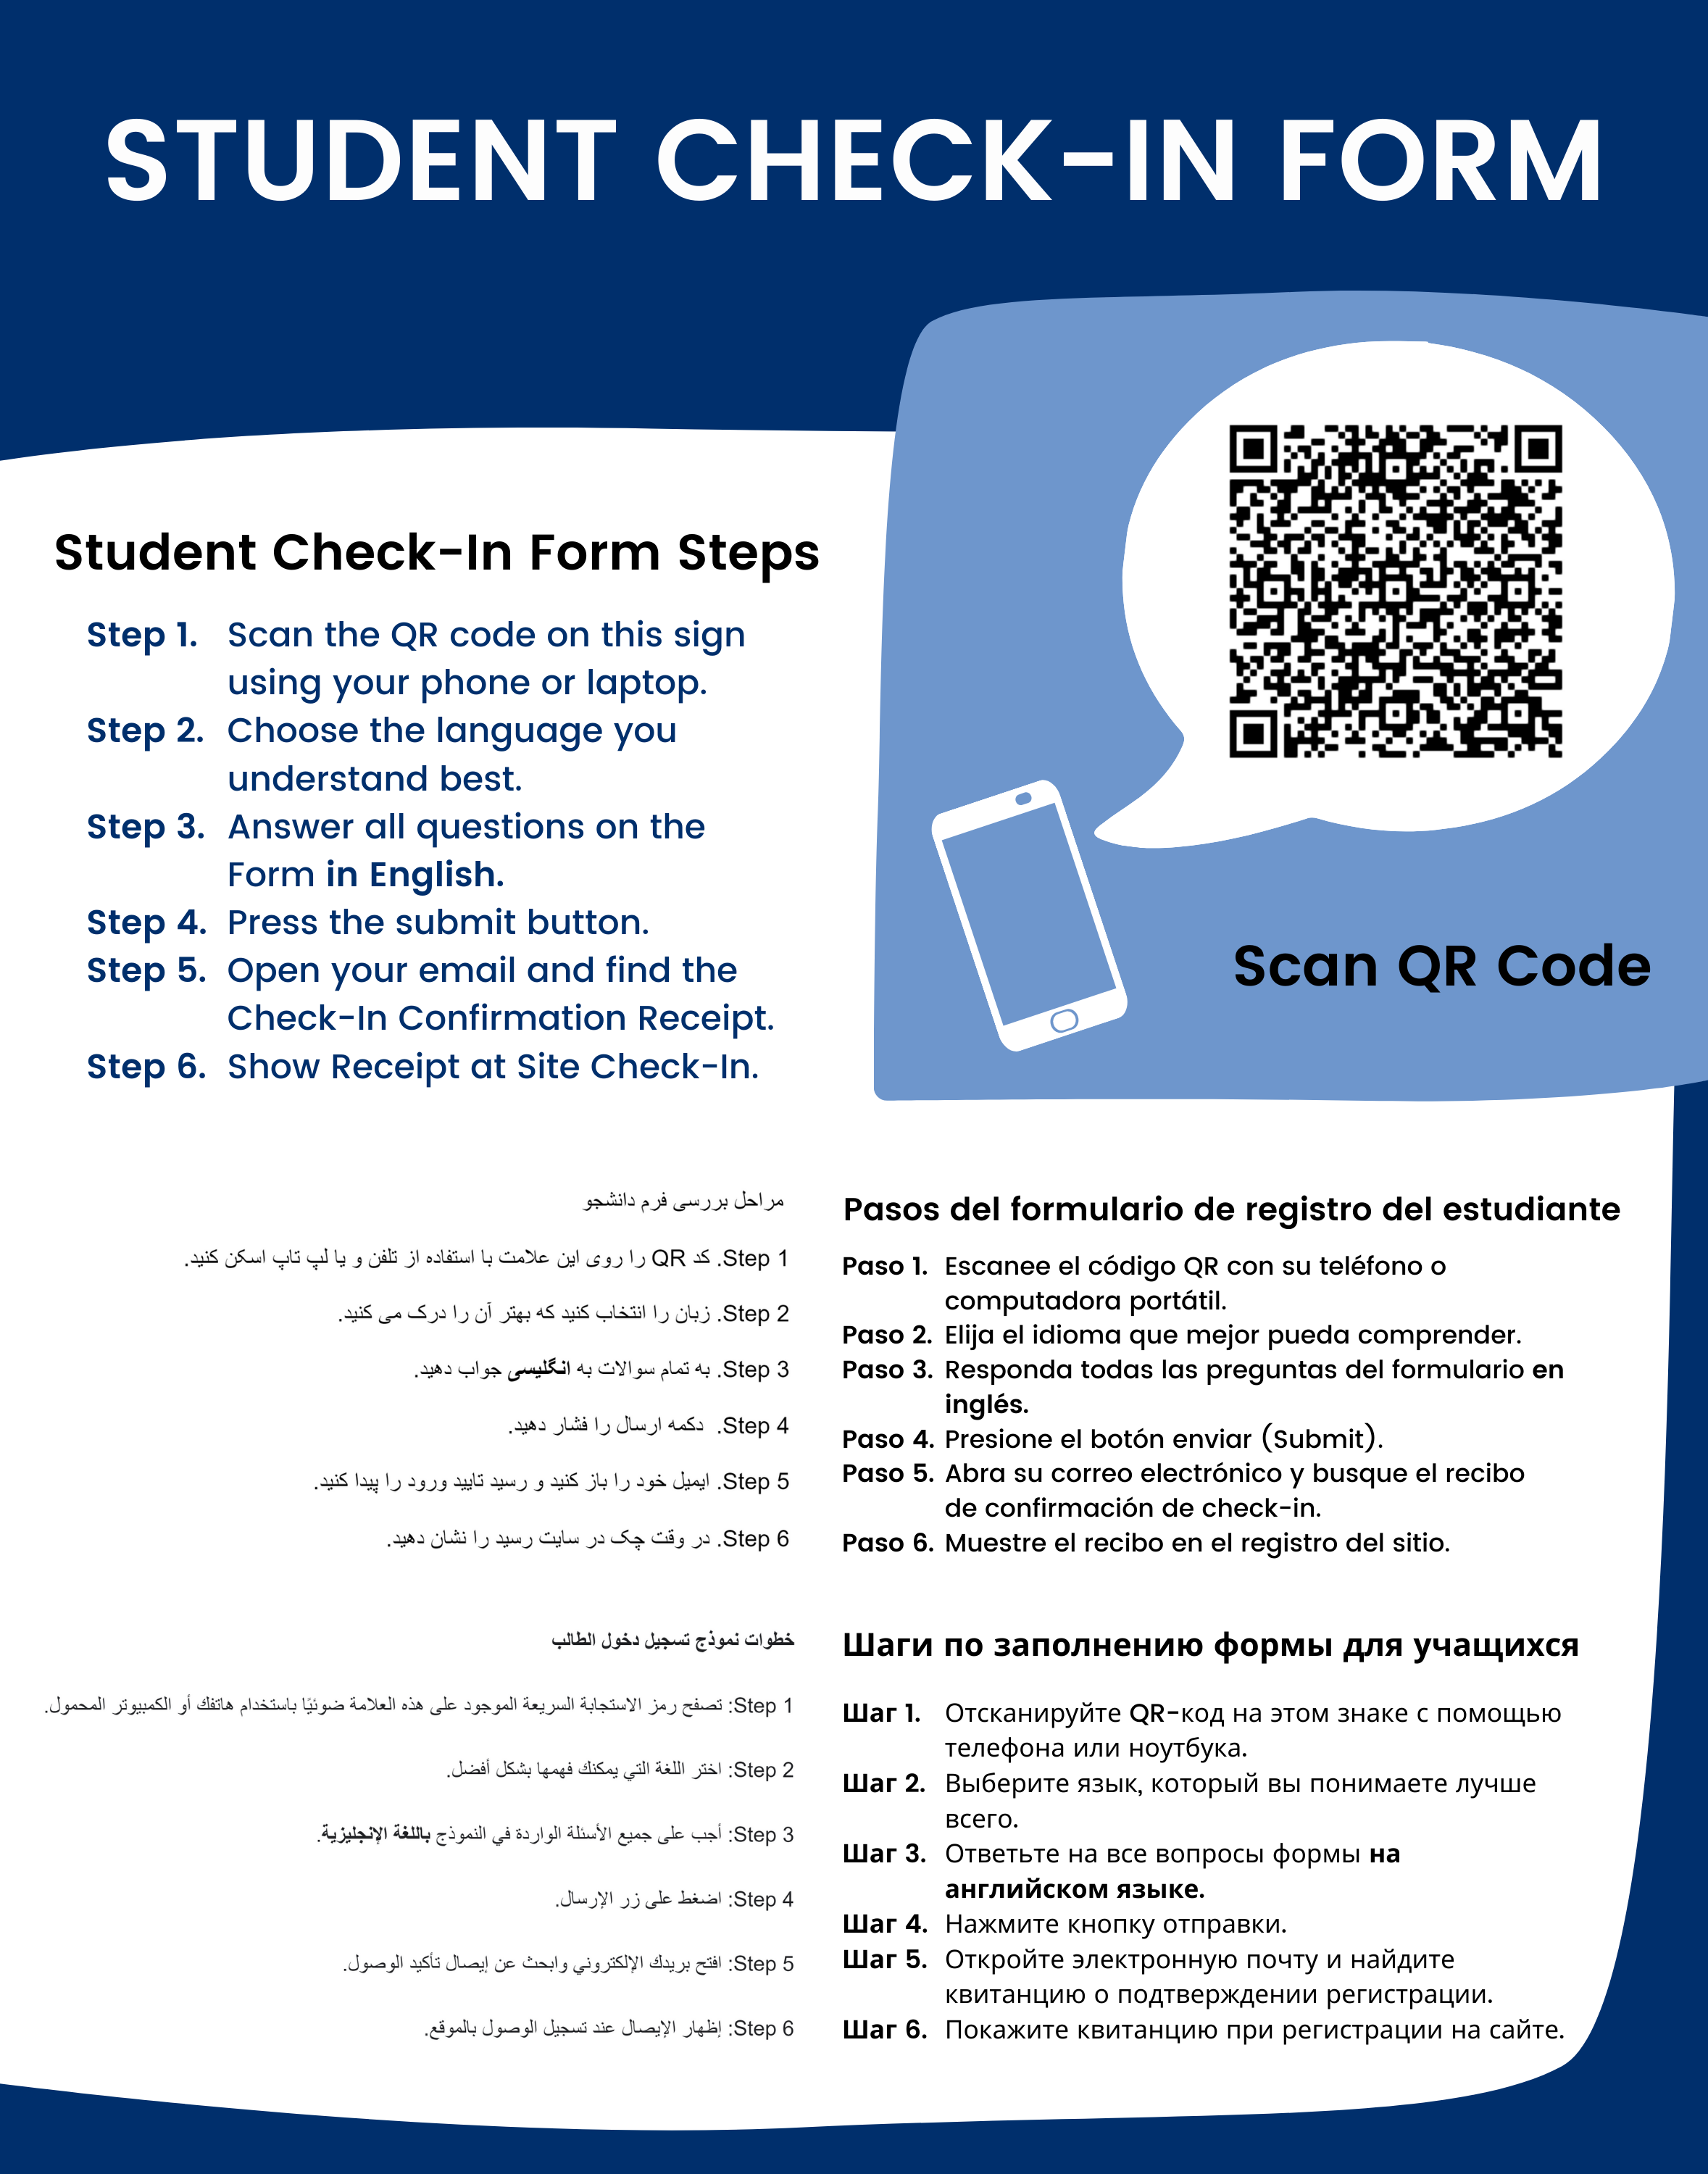 Student Check-in Instructions